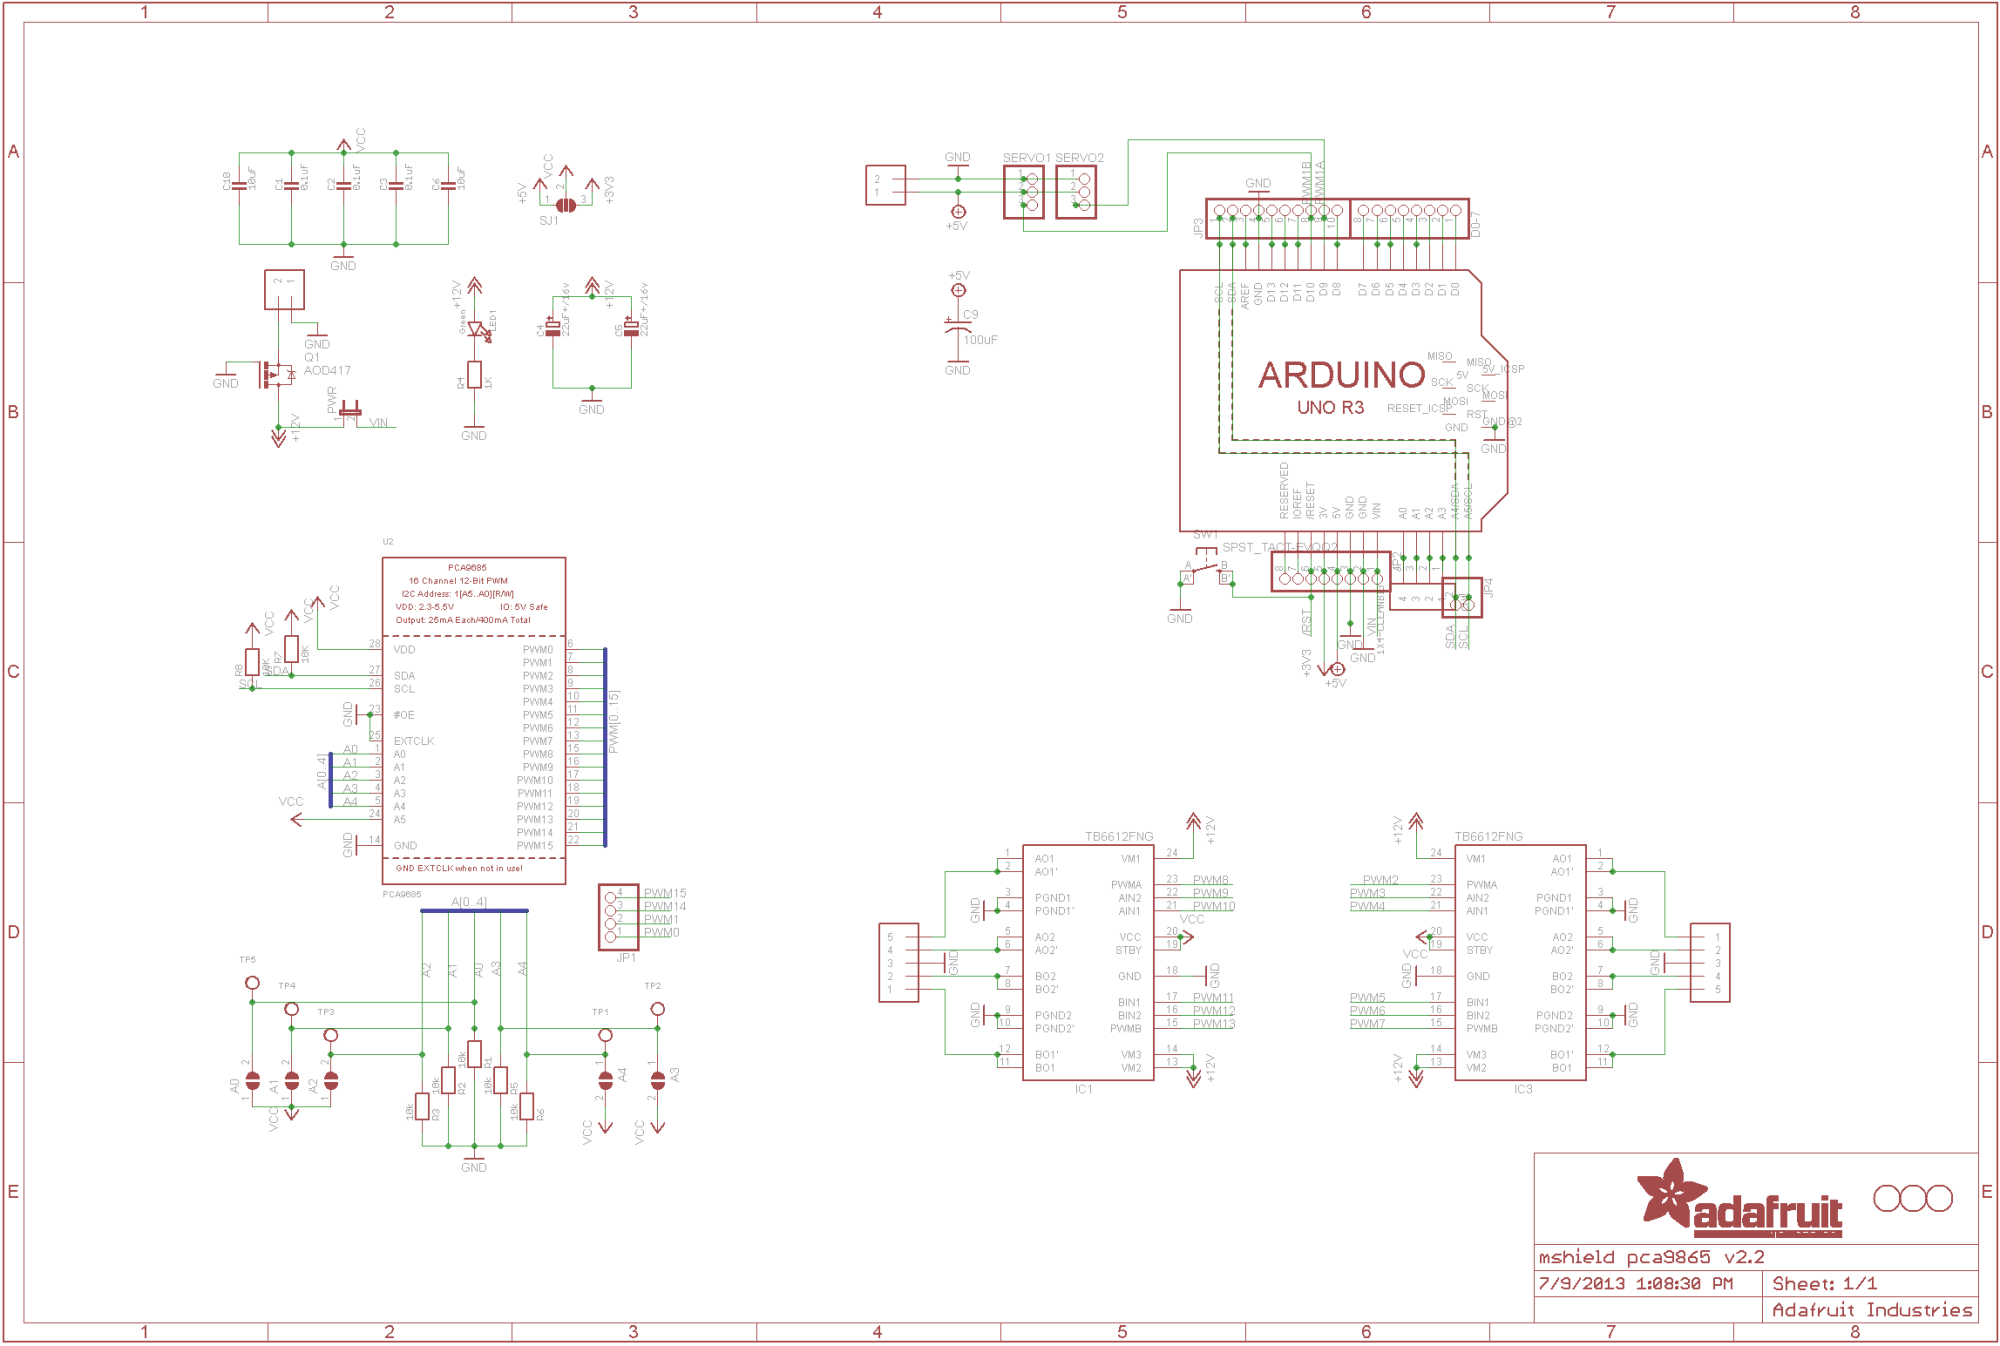 hight resolution of arduino uno schematic for the adafruit motor shield v2 3 arduino rh arduino stackexchange com arduino